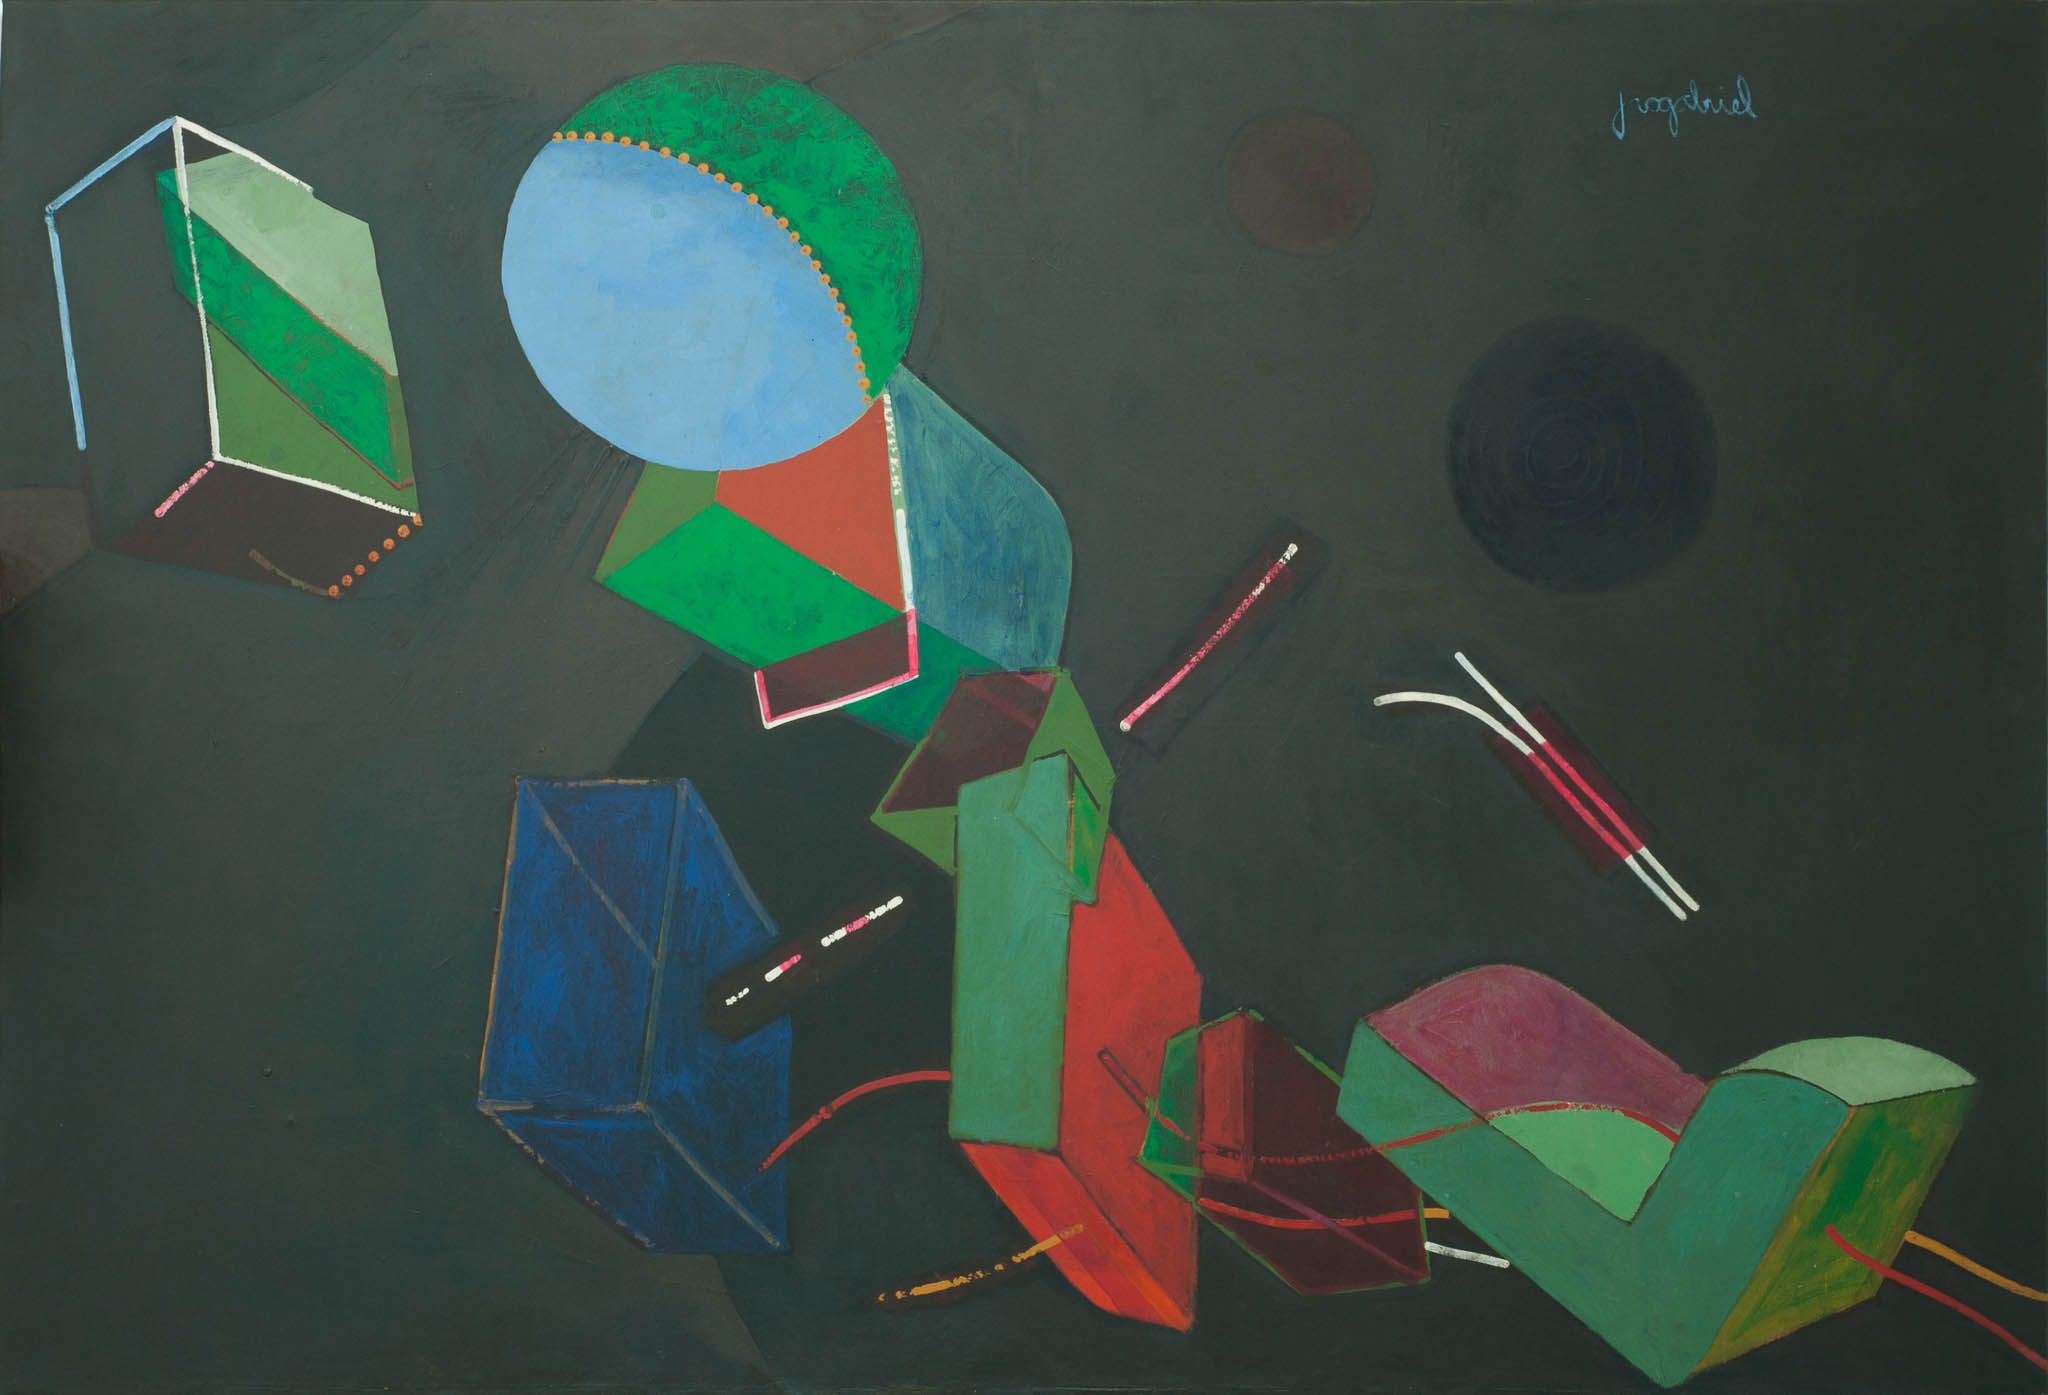 Abstract, 1970-80s